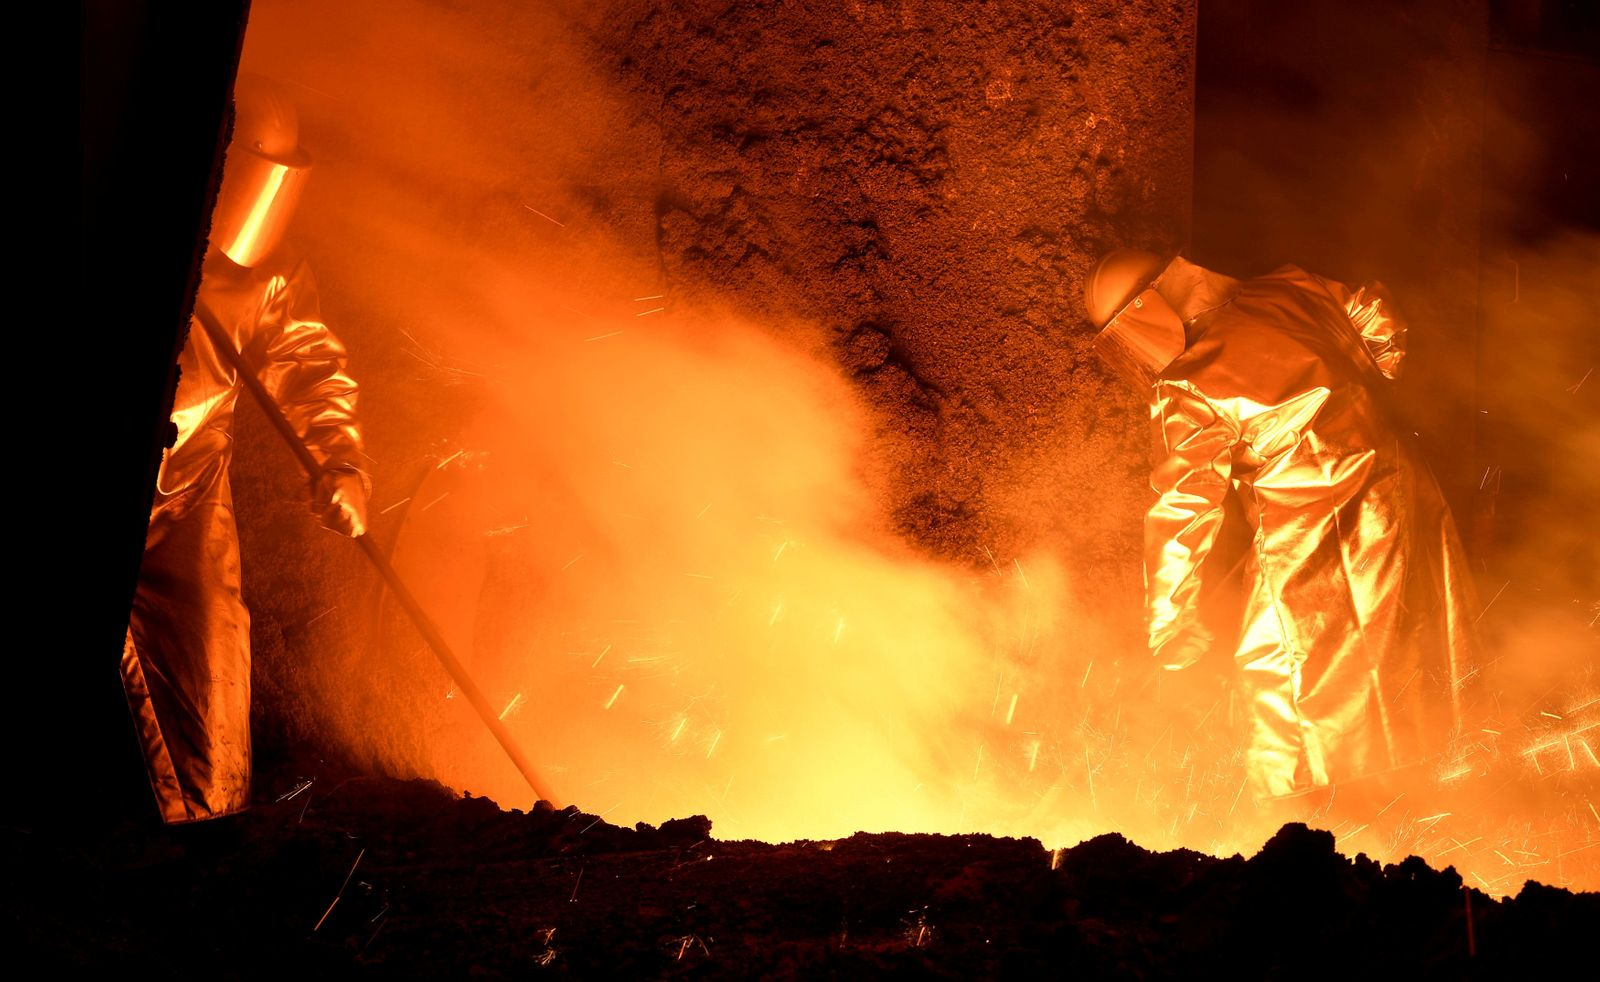 FILE PHOTO: Steelworkers stand at a furnace at the plant of German steel company Salzgitter AG in Salzgitter